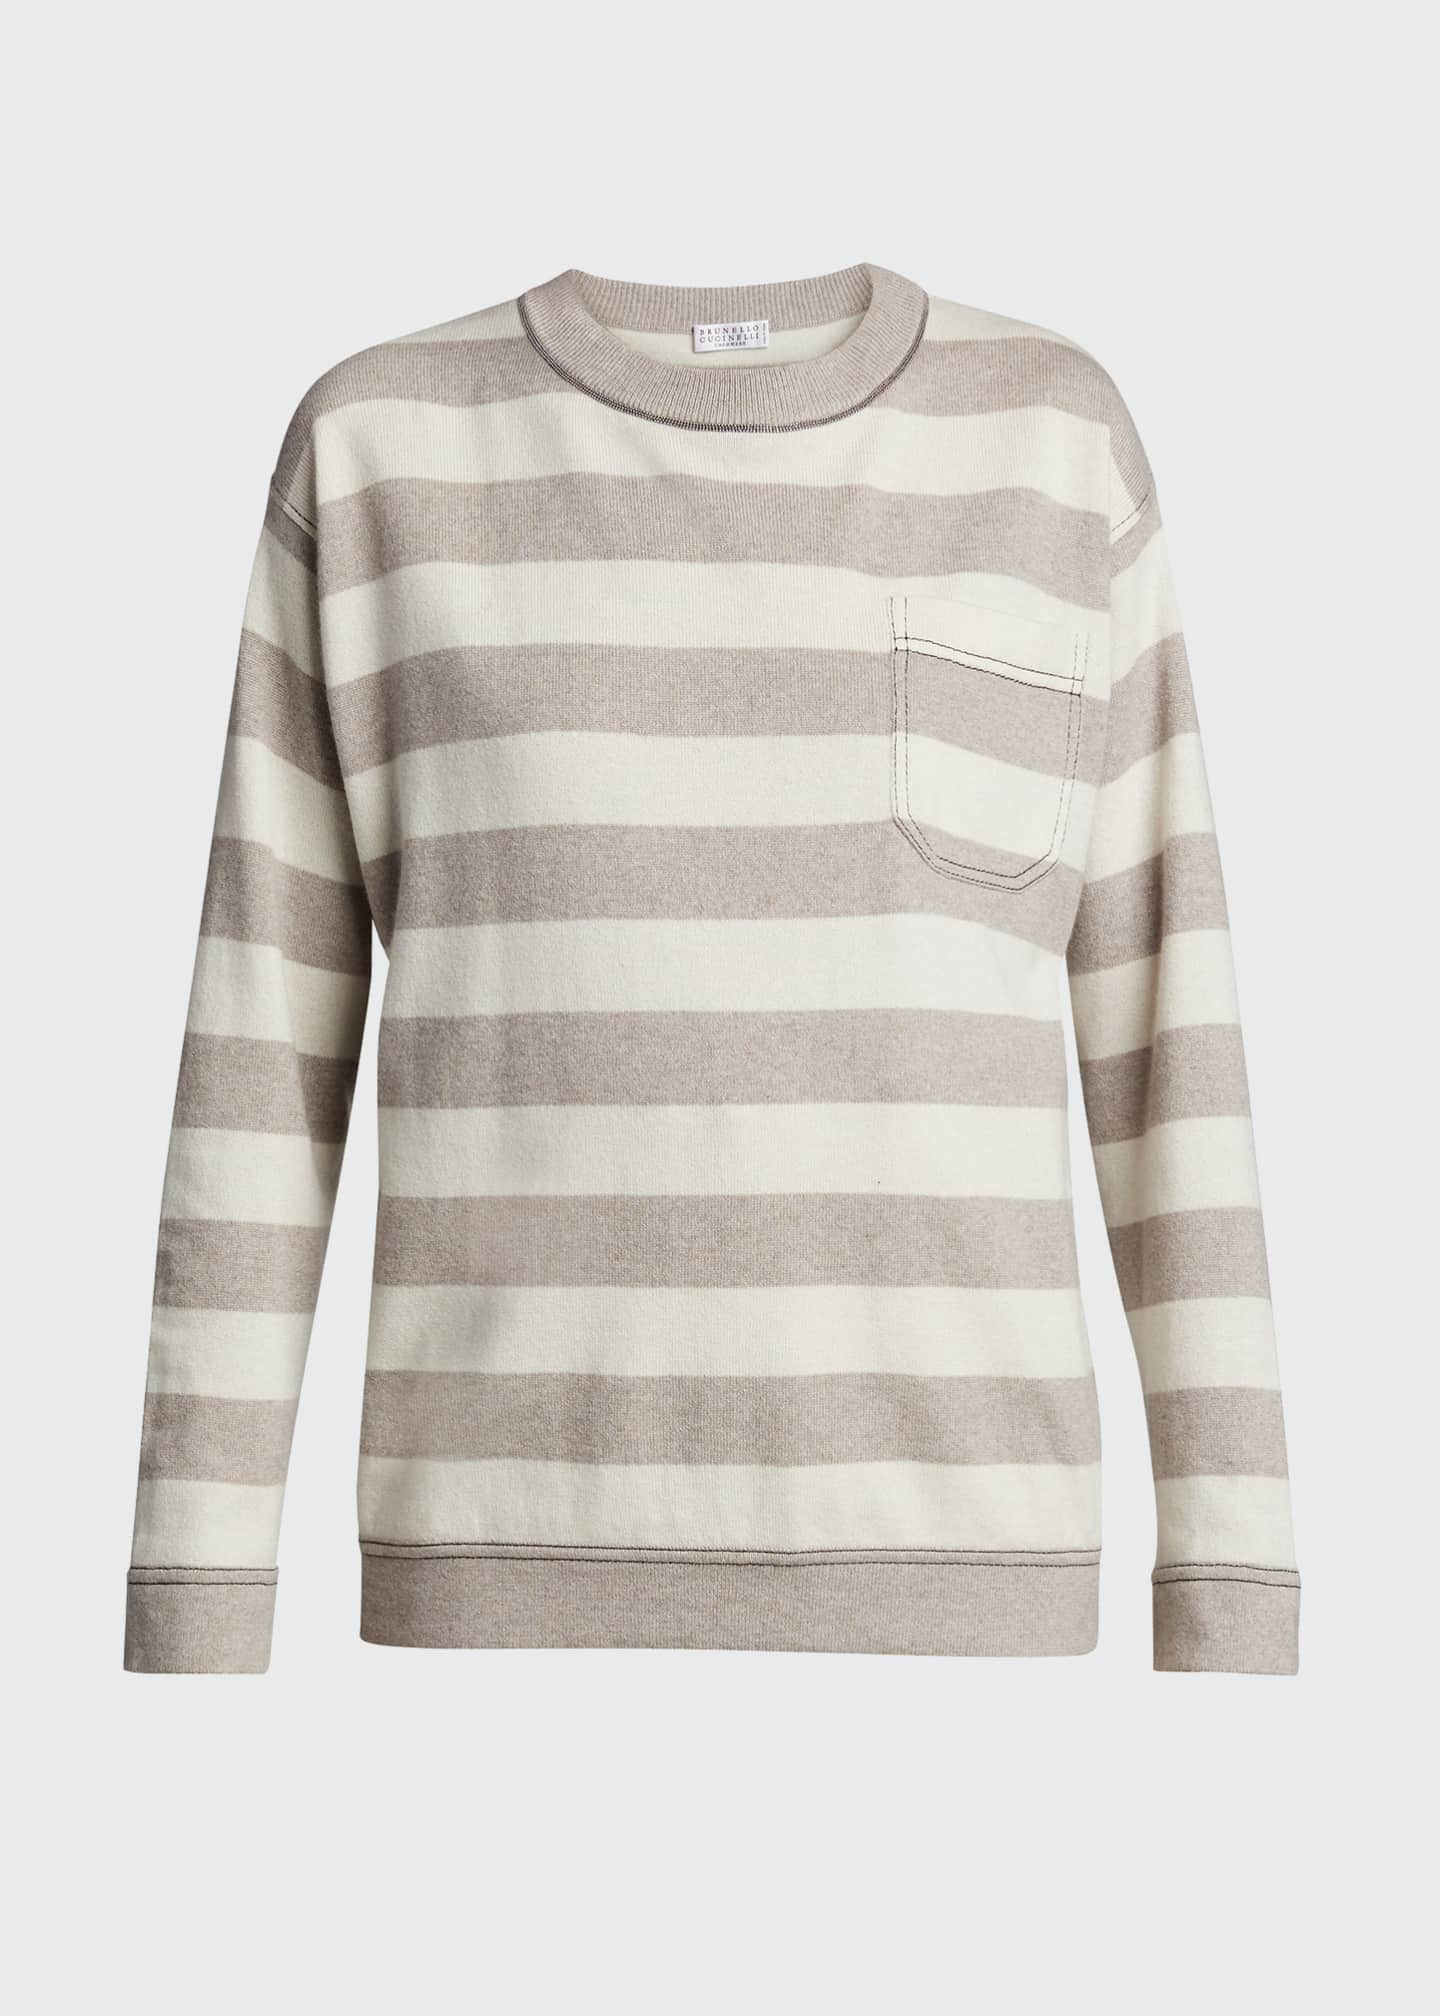 Image 5 of 5: Solomeo Yarn Striped Sweater